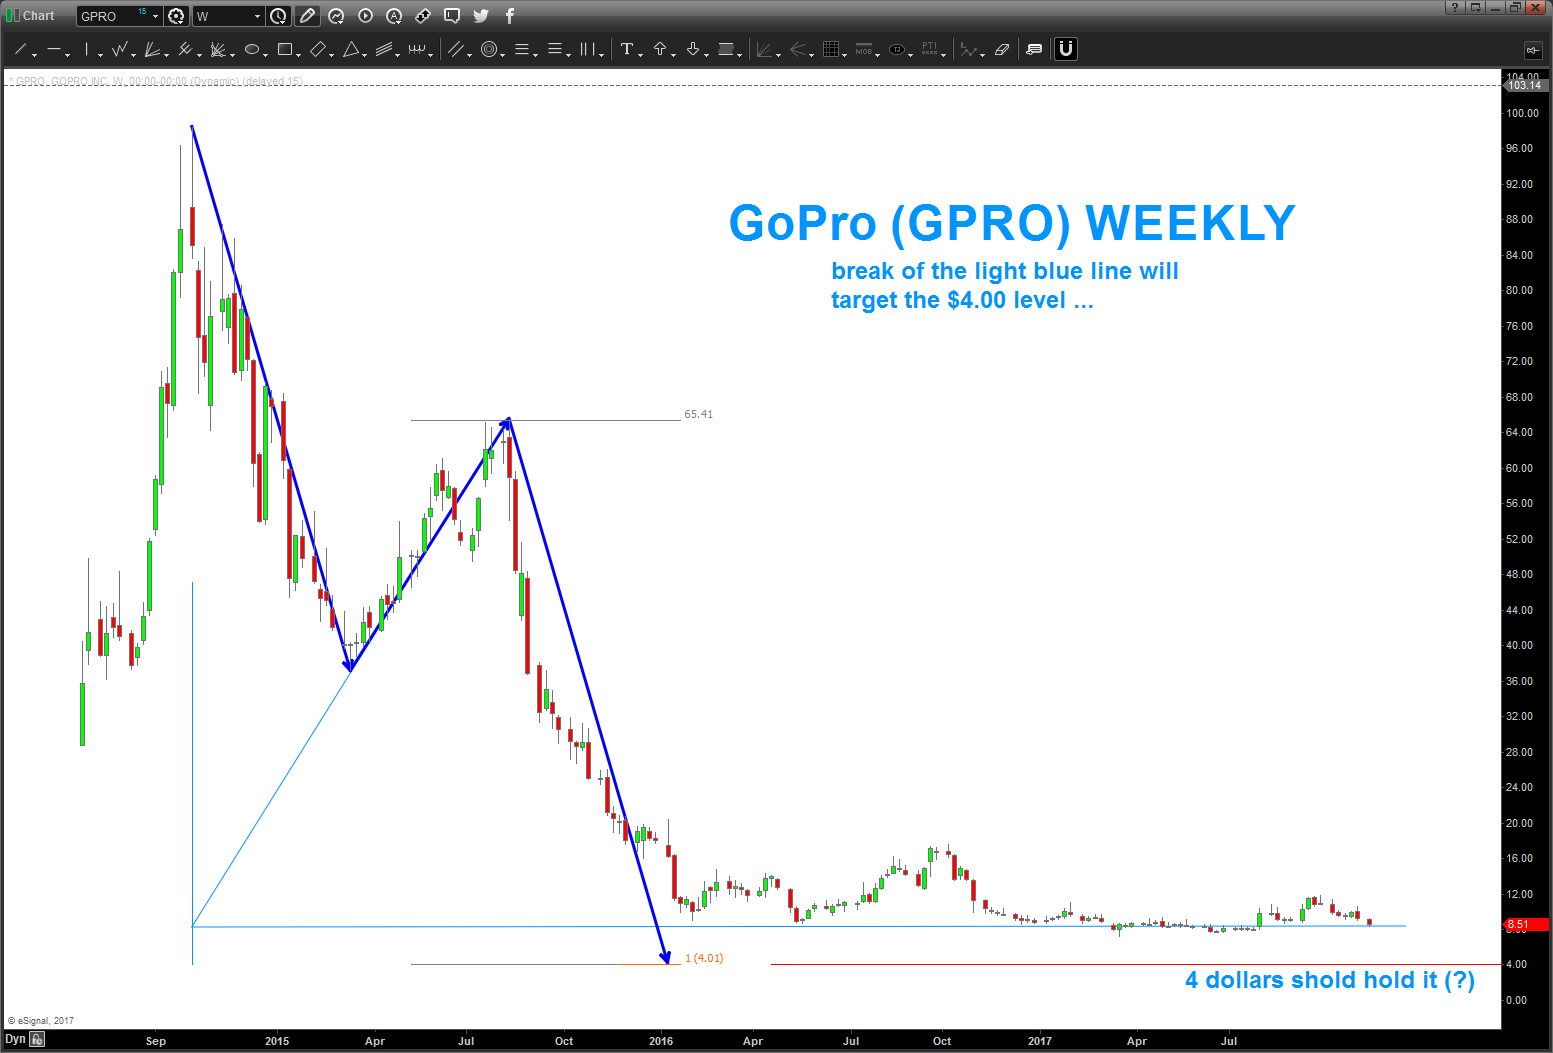 gopro stock price chart gpro lower targets_long term_investing